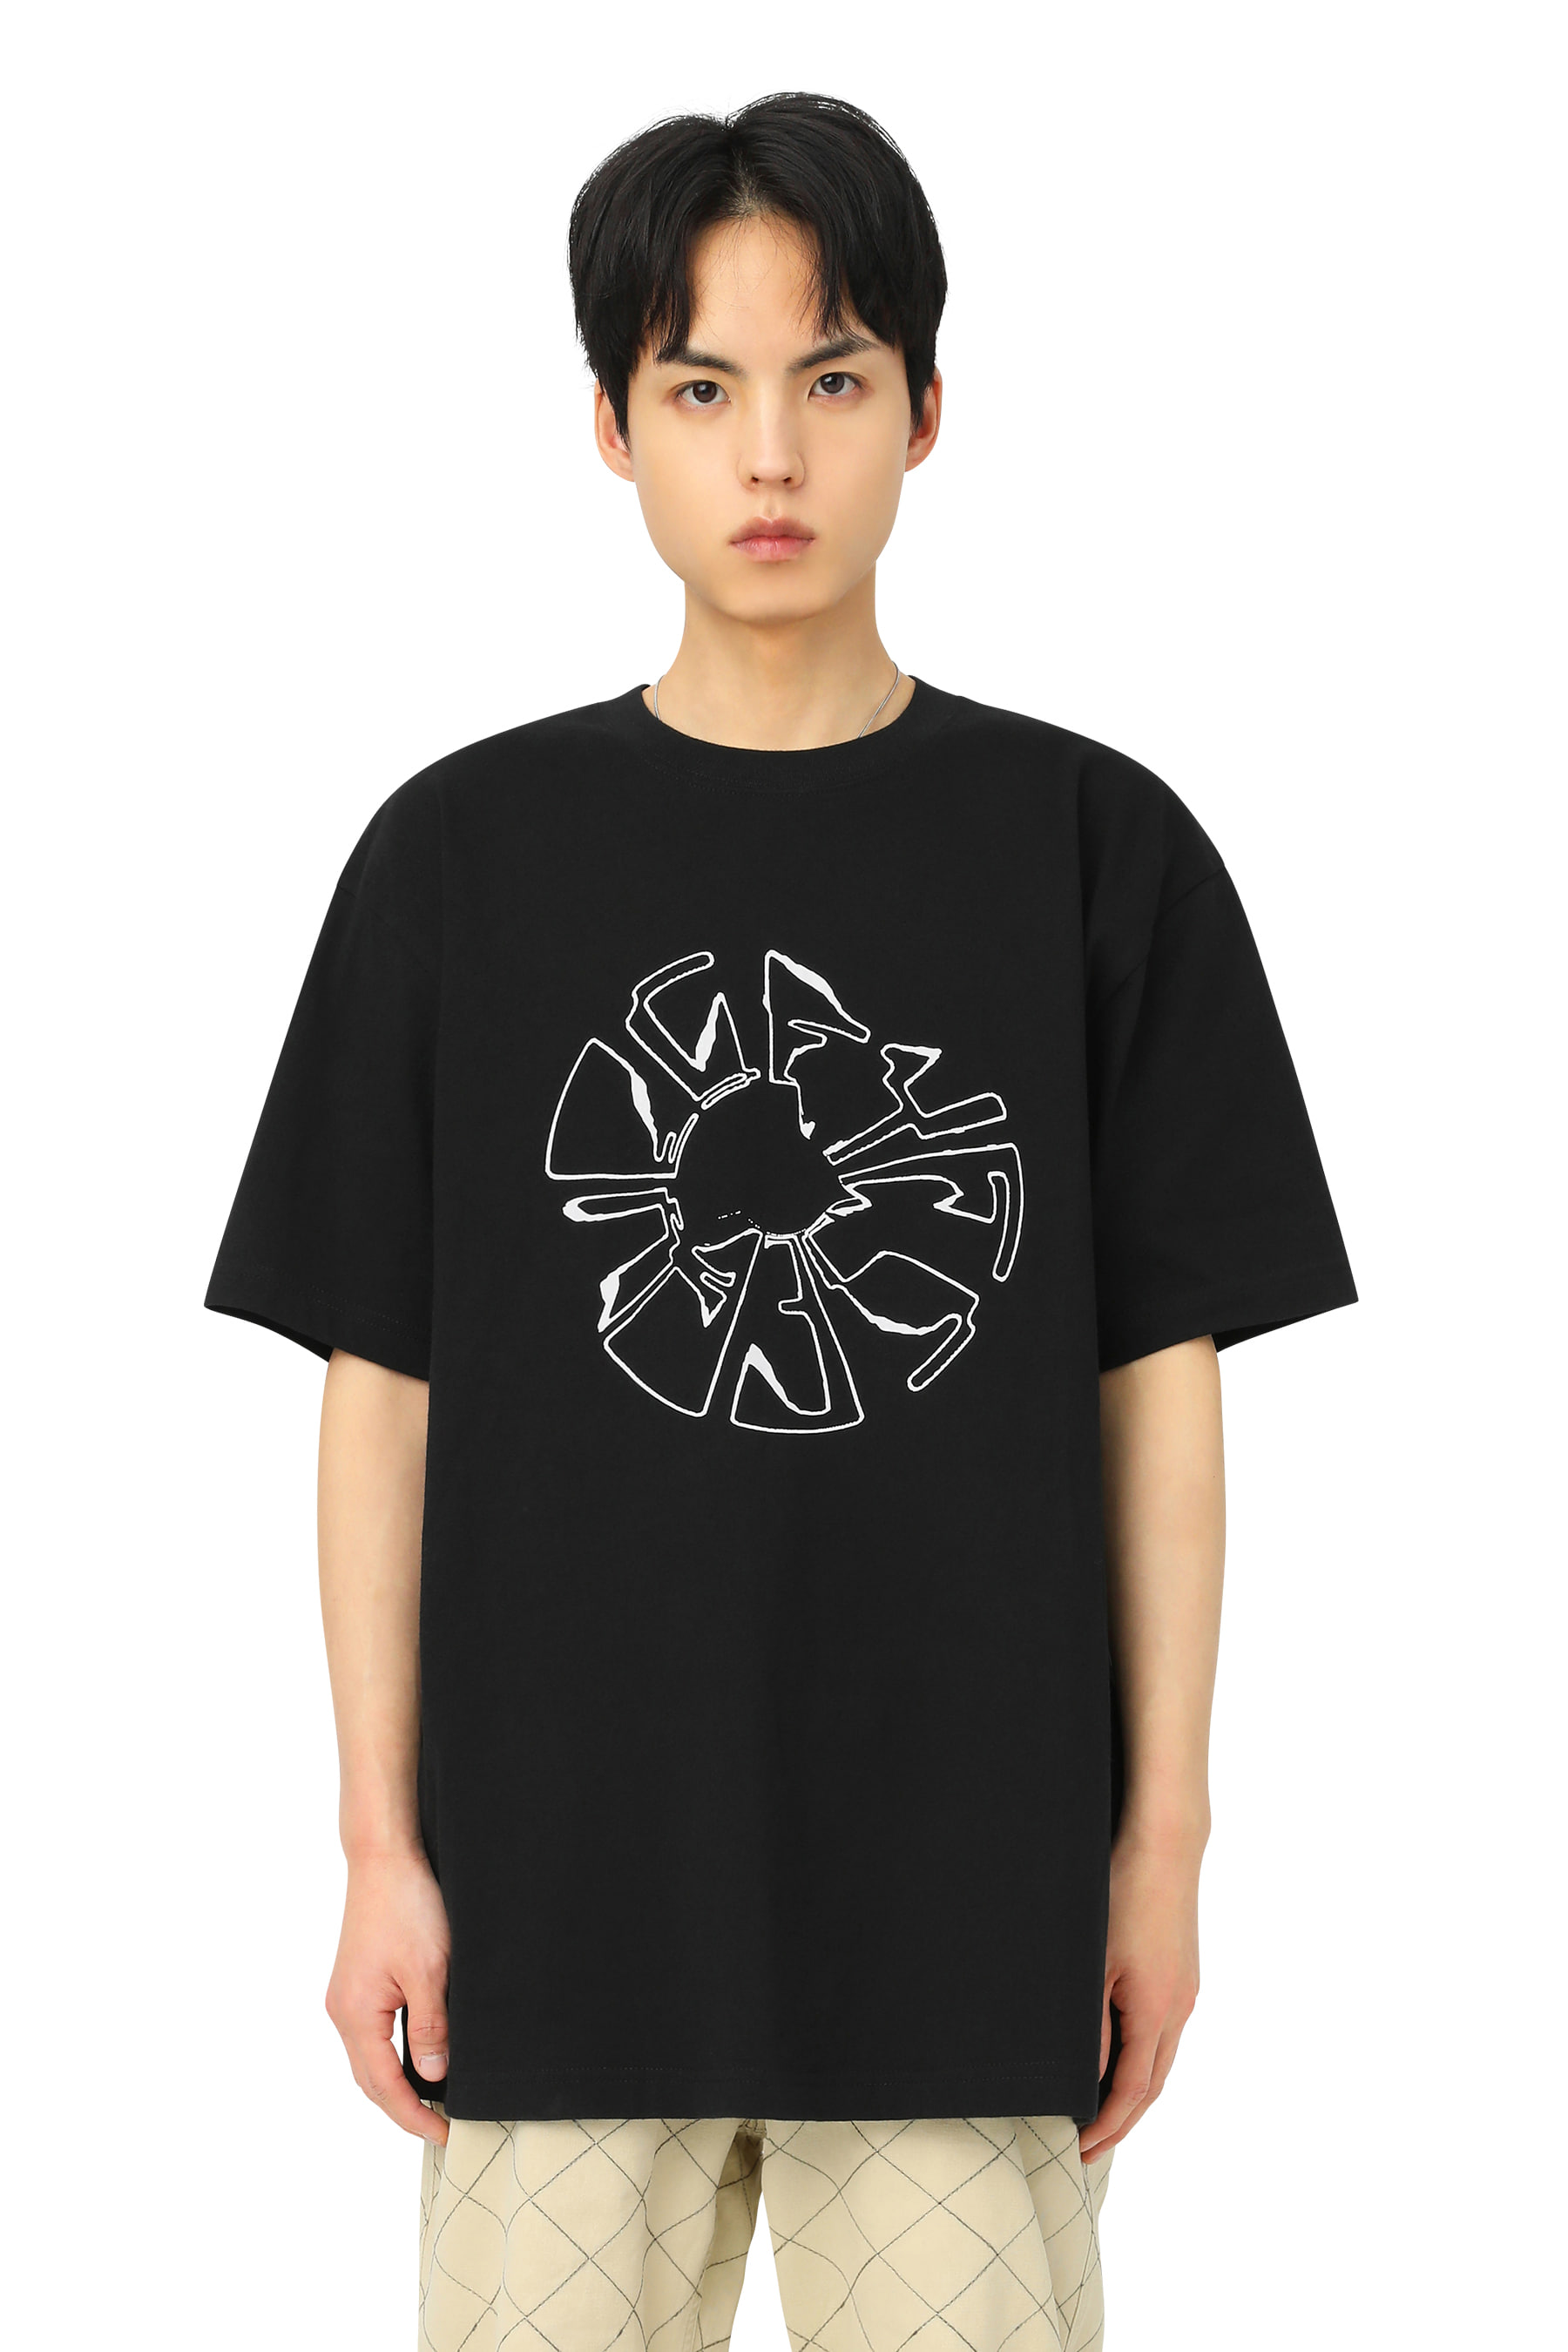 Y.E.S Magnetic Tee Black